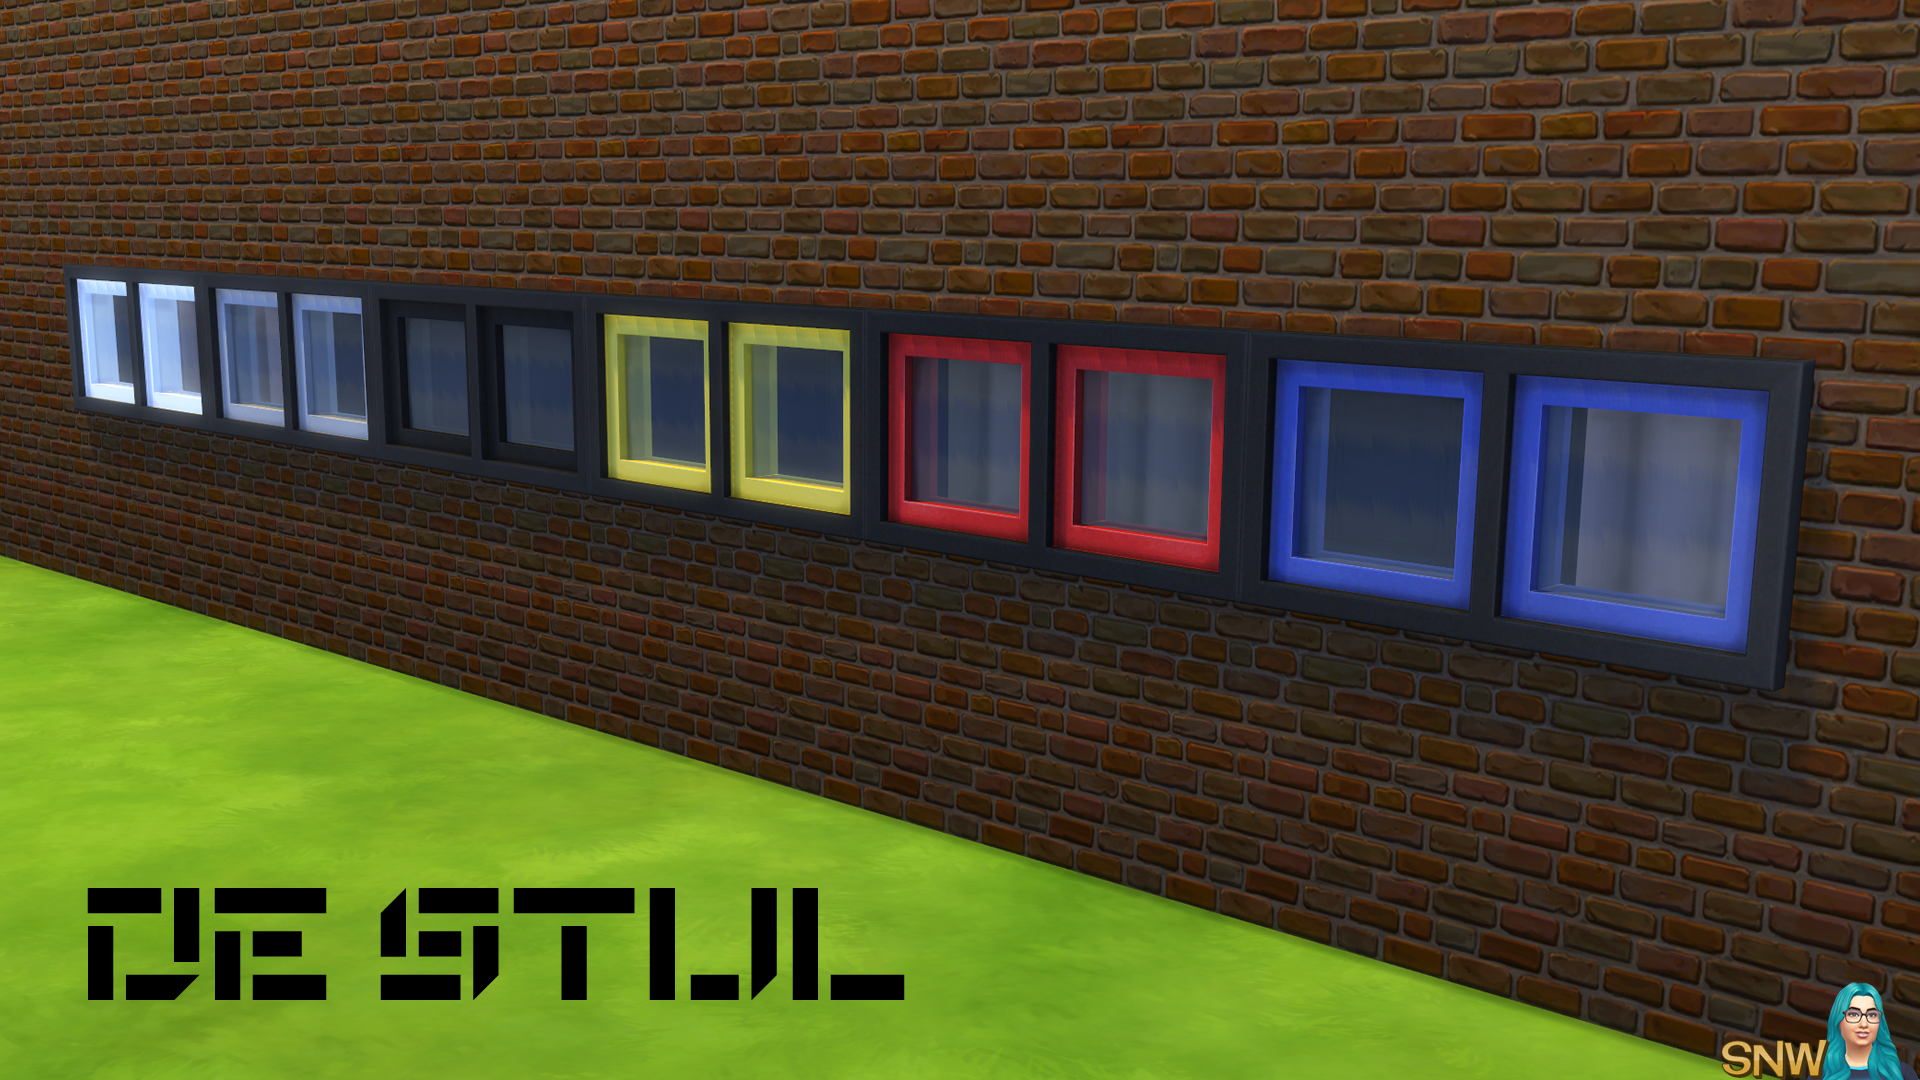 De Stijl Double Square Window 7 Snw Simsnetwork Com